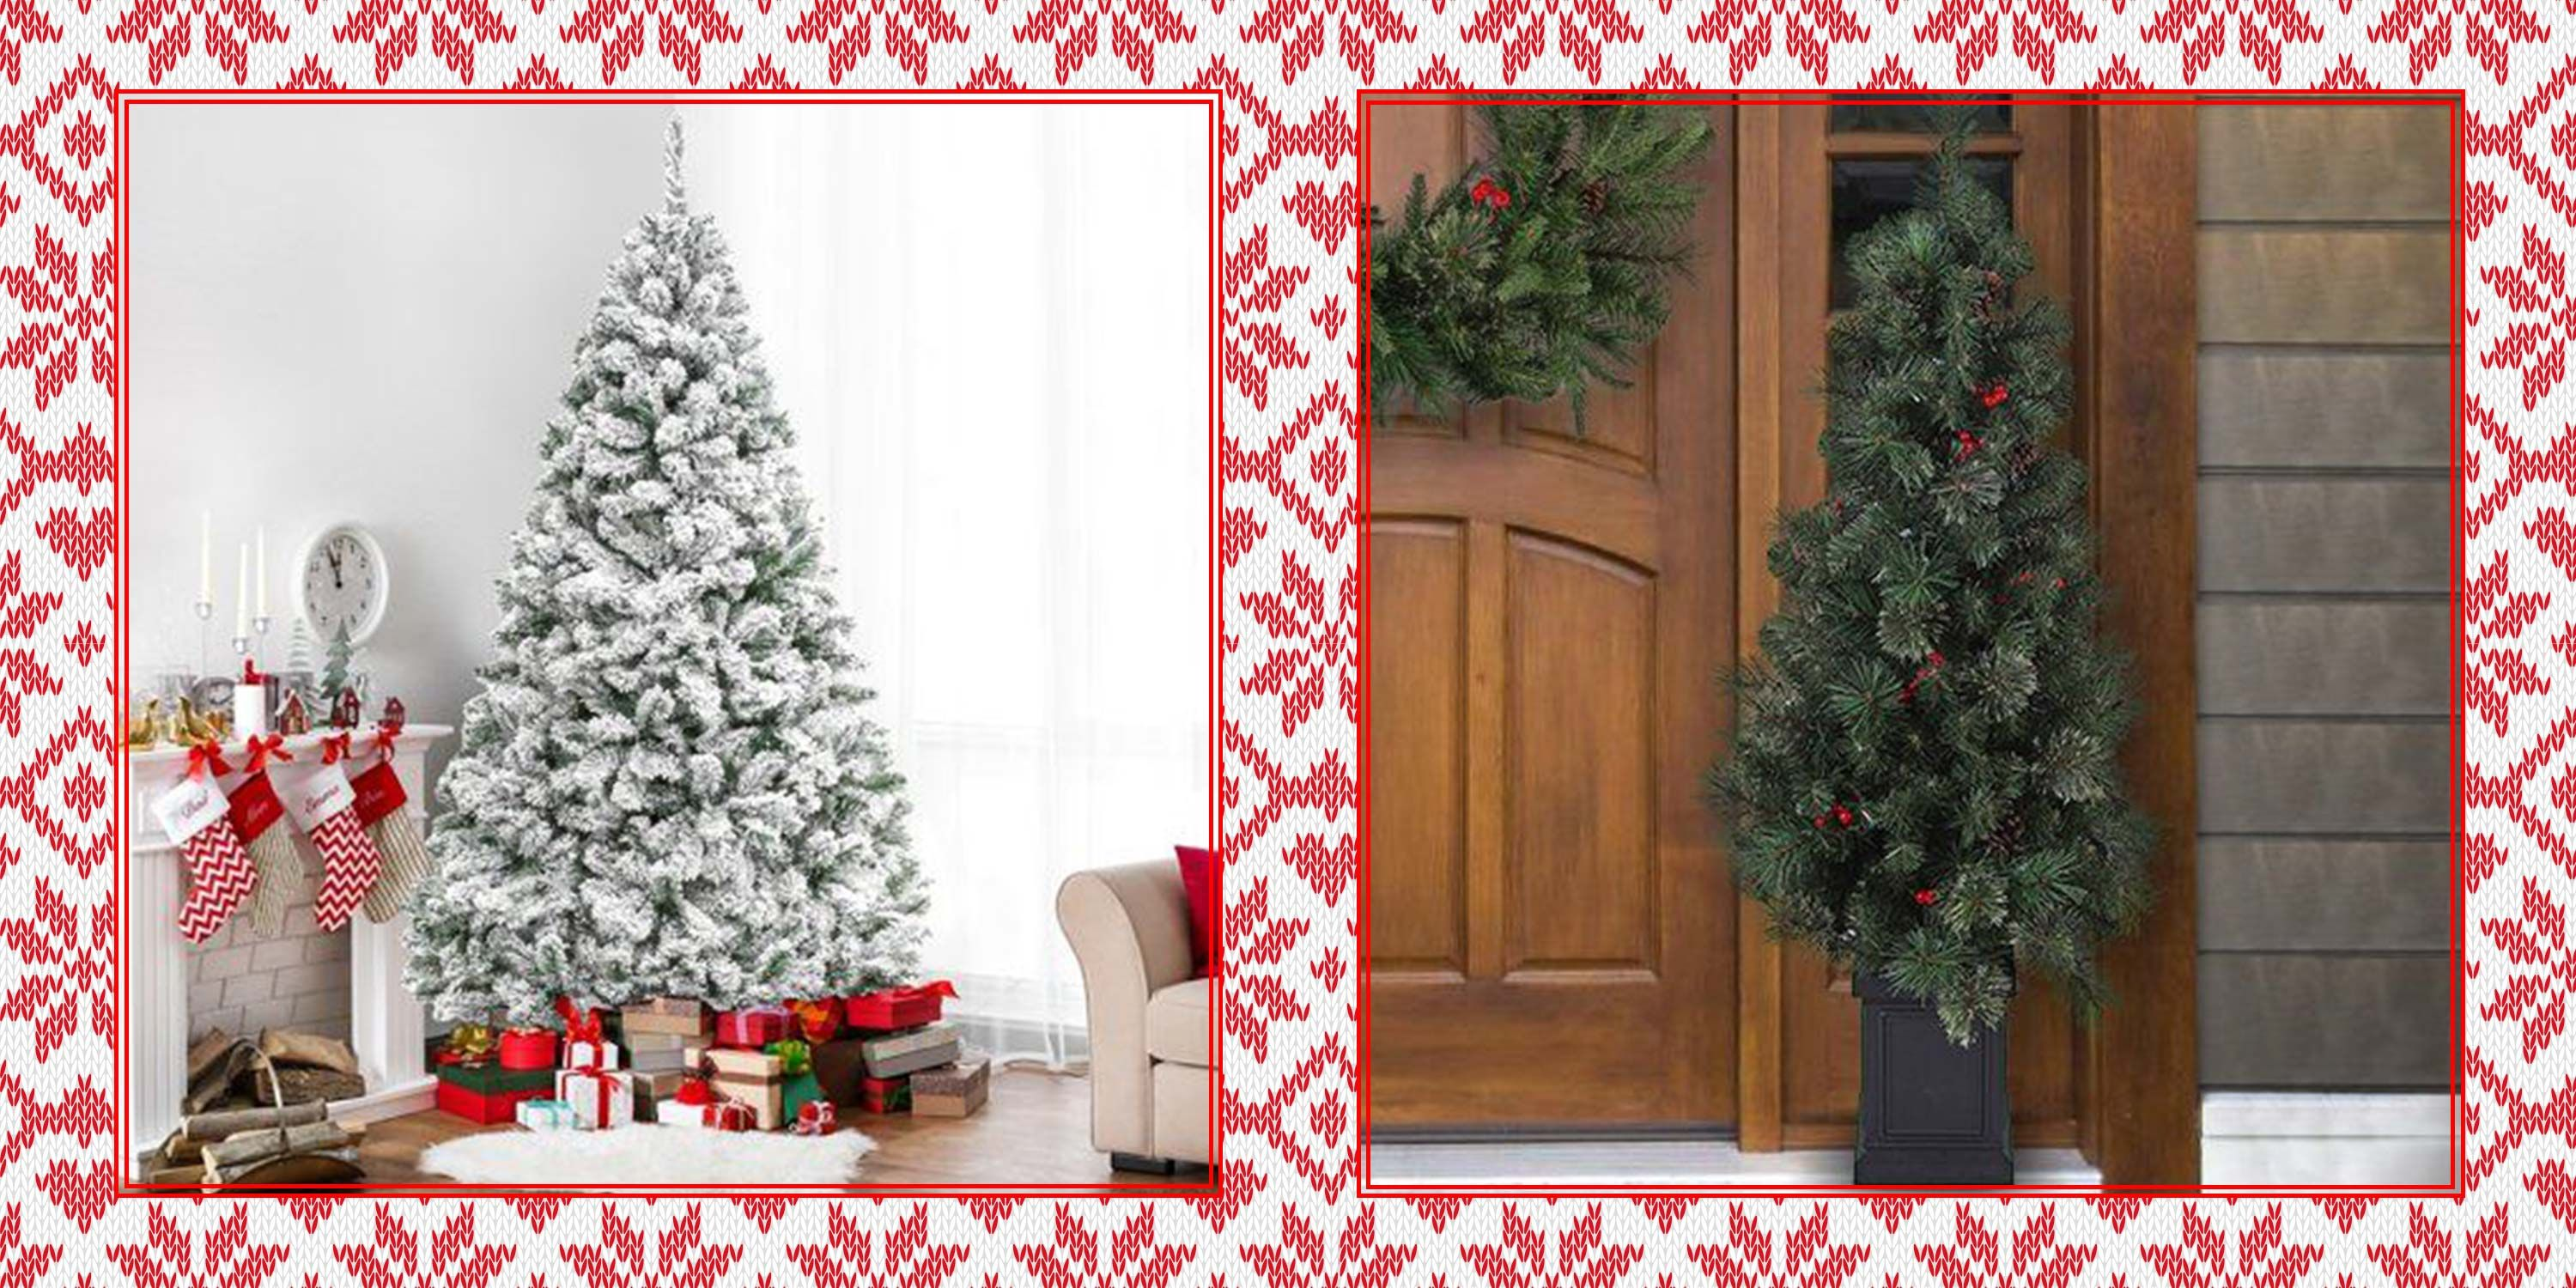 30 Best Artificial Christmas Trees of 2019 - Where to Buy